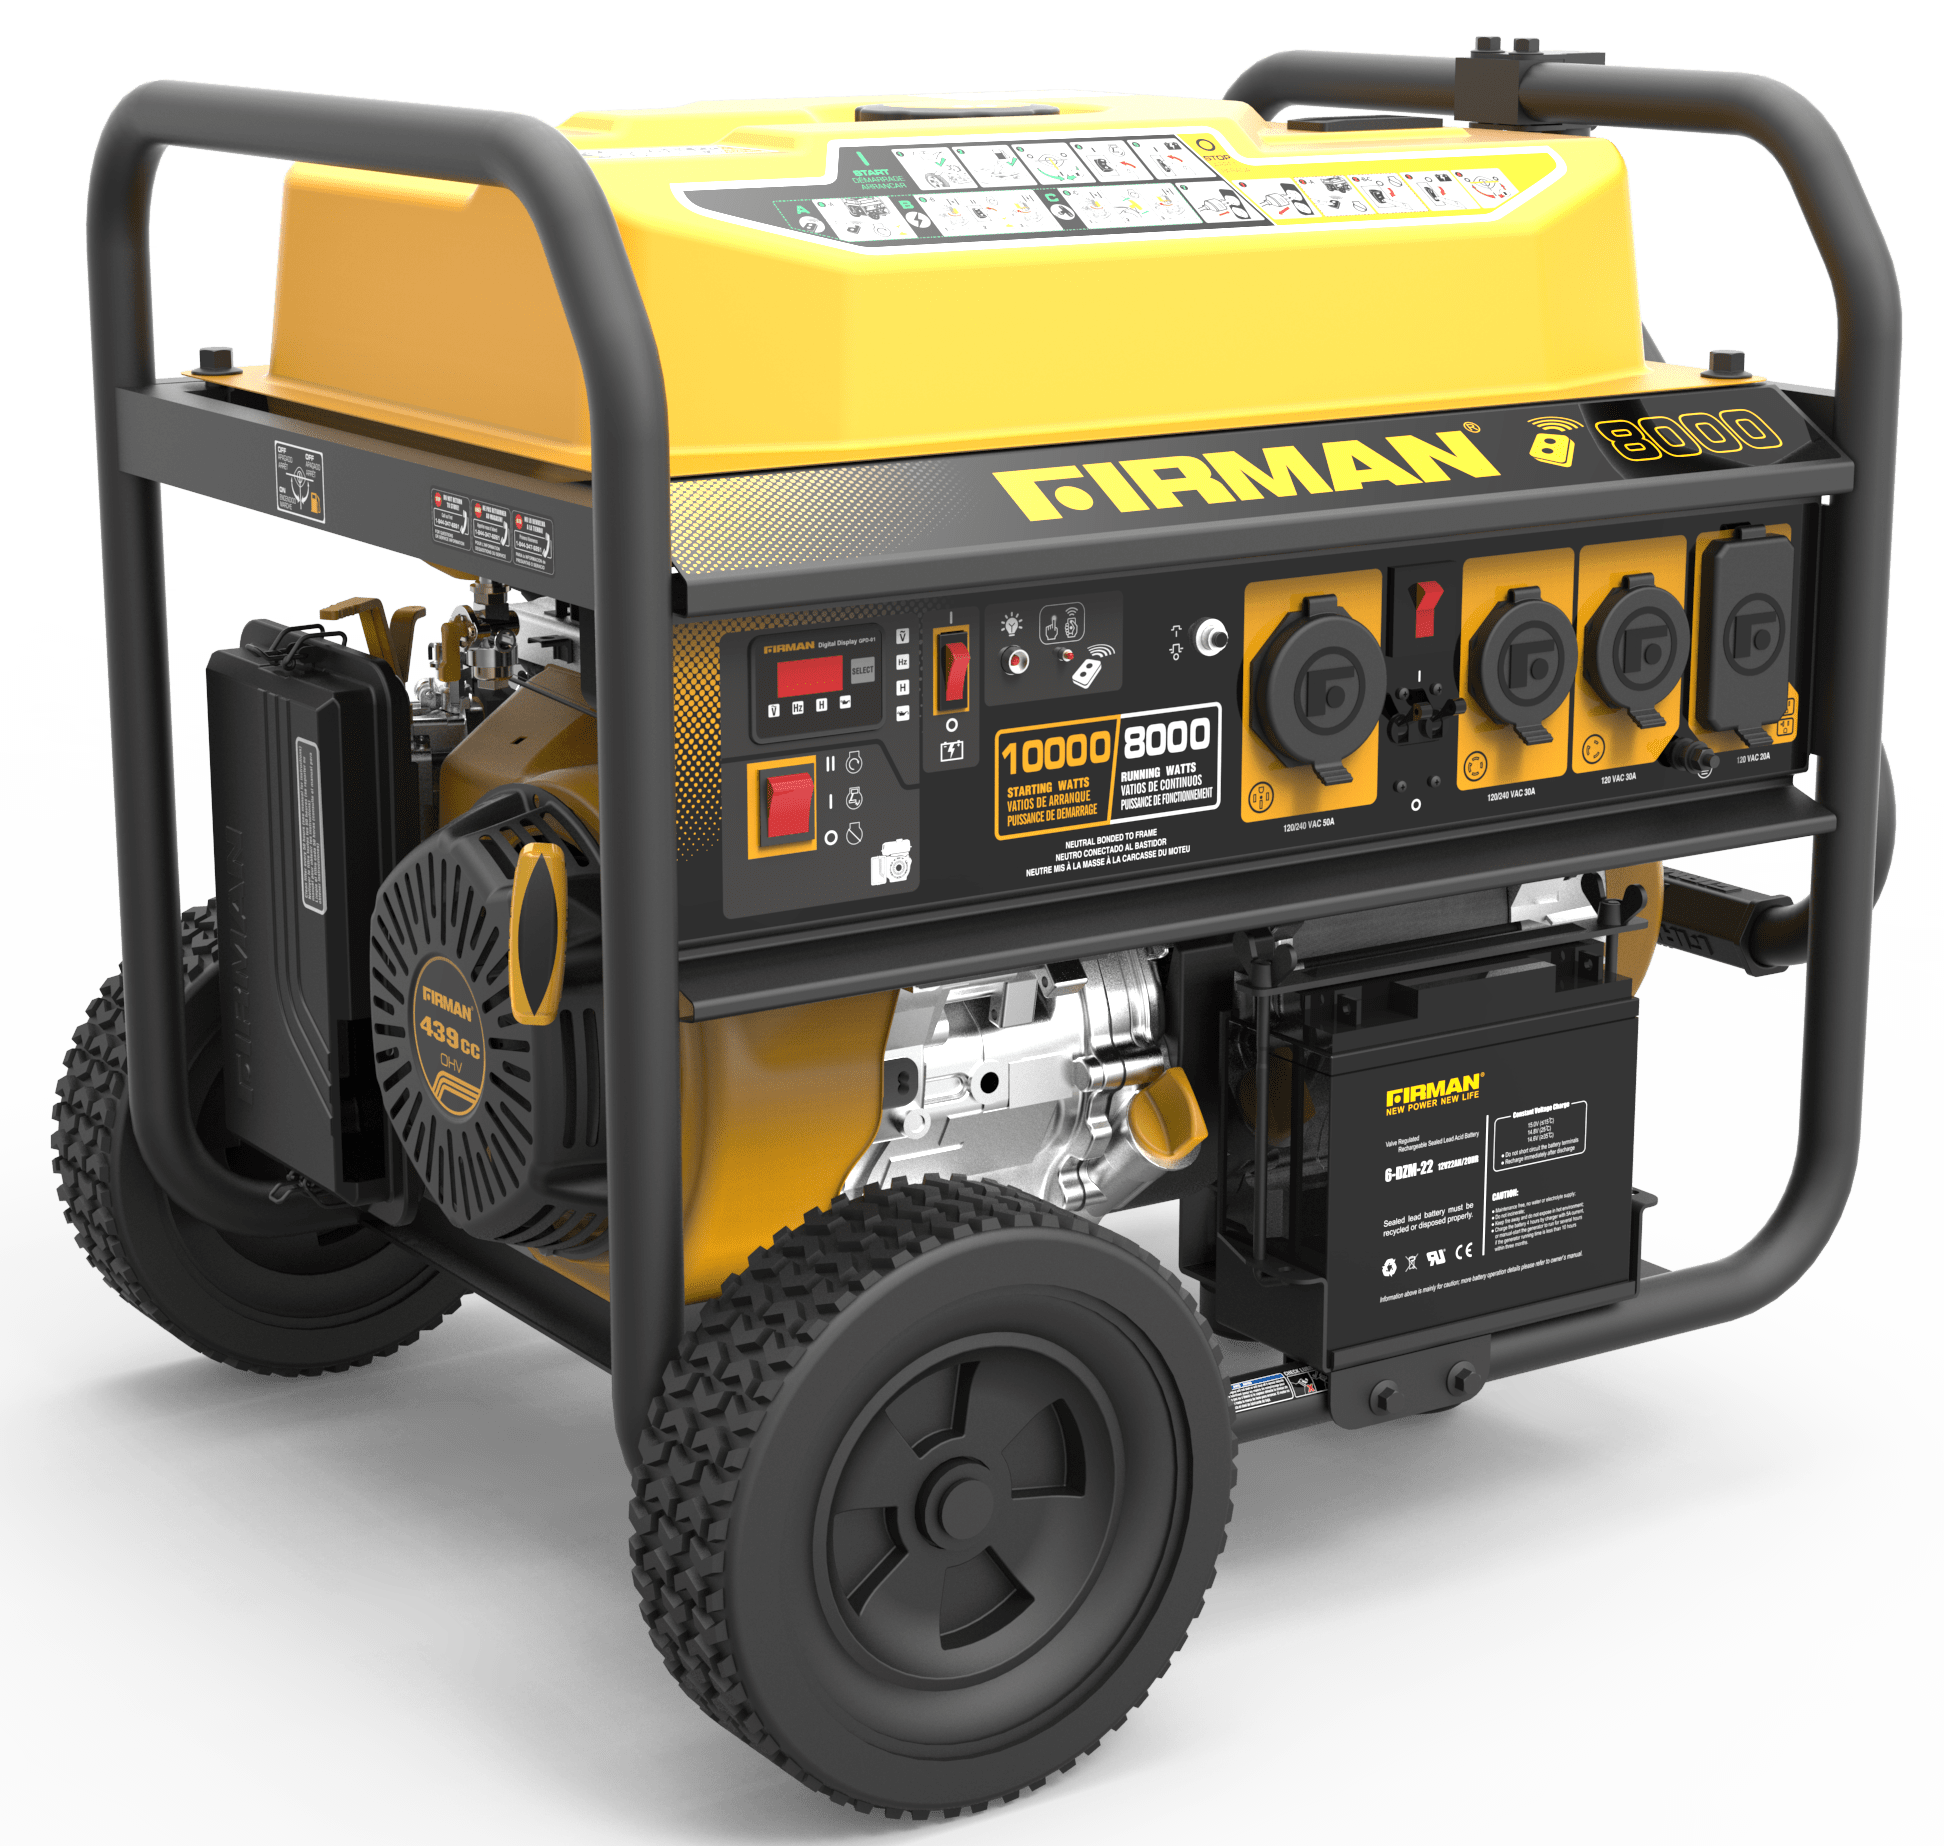 Firman P08004 10,000W Gas Powered Portable Generator with remote